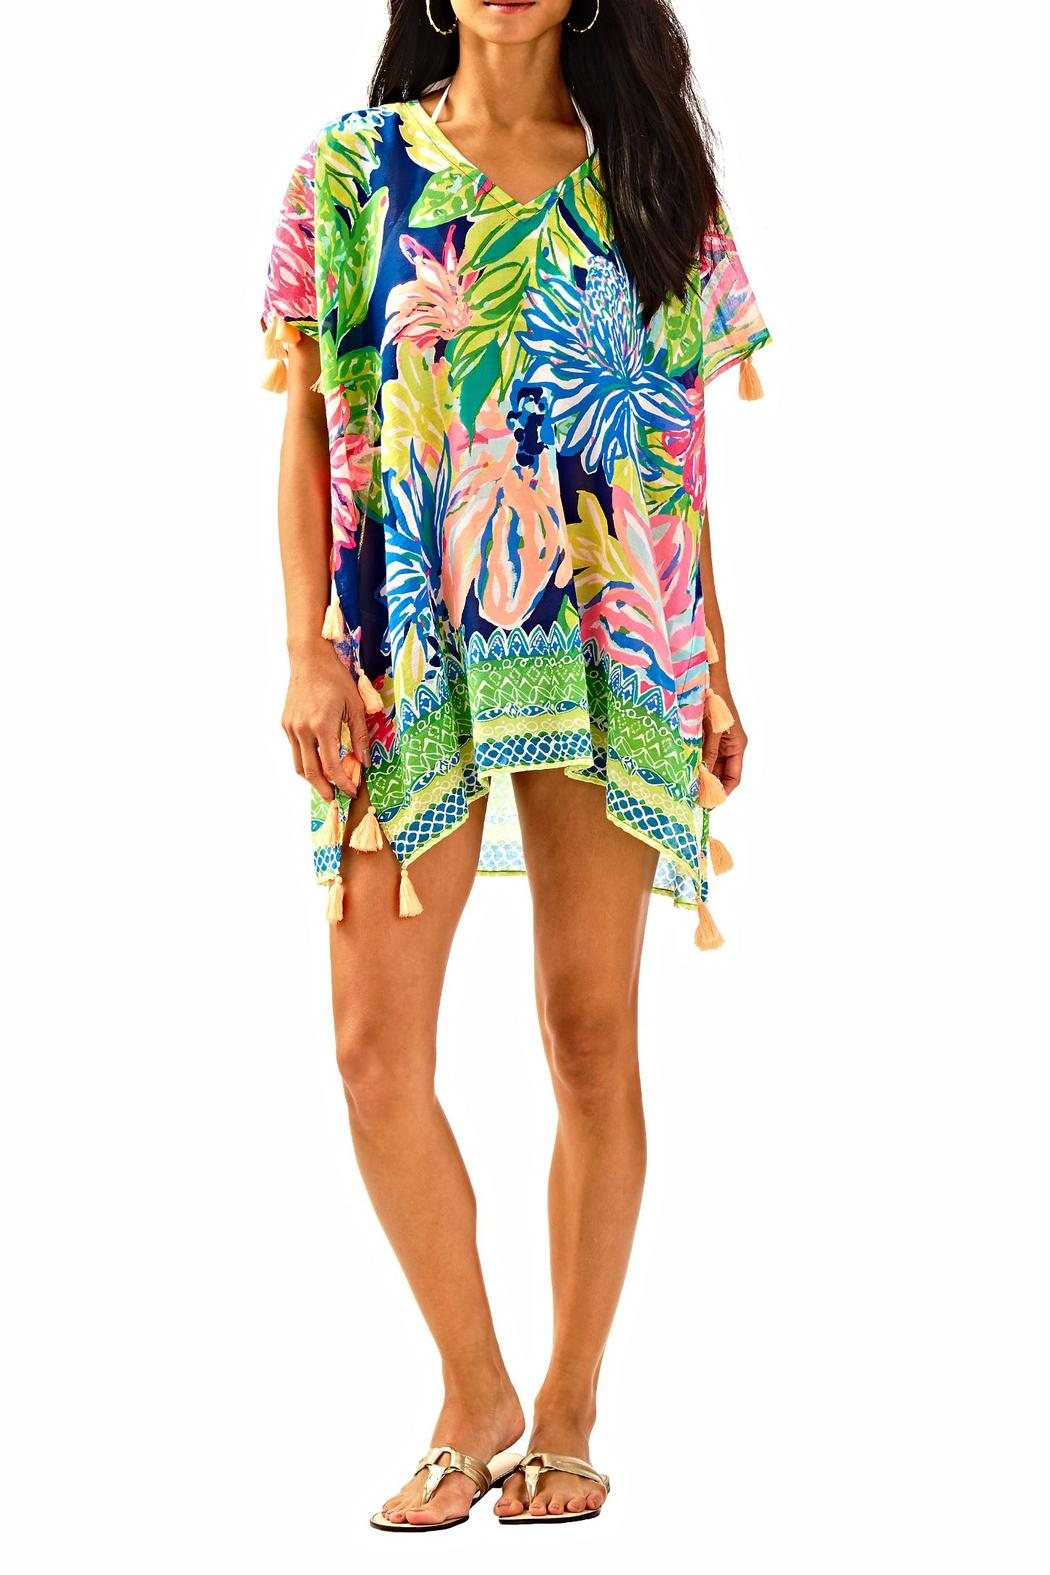 Golf Bags For Sale >> Lilly Pulitzer Castilla Cover Up Tunic from Sandestin Golf and Beach Resort by Island Clothiers ...